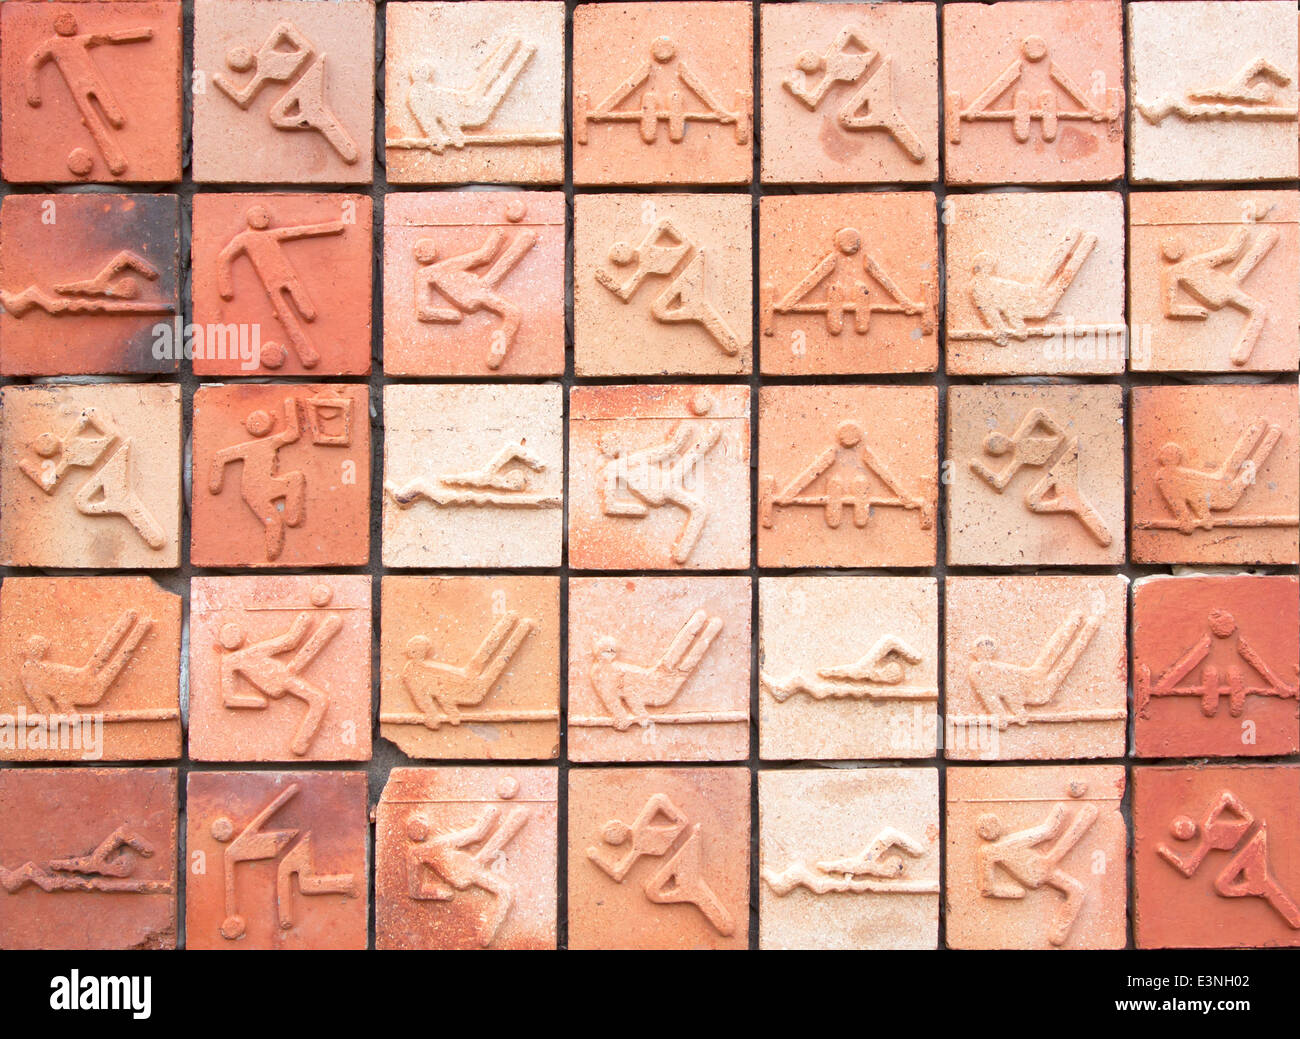 Wall tiles are shaped icon people exercise in various postures. - Stock Image